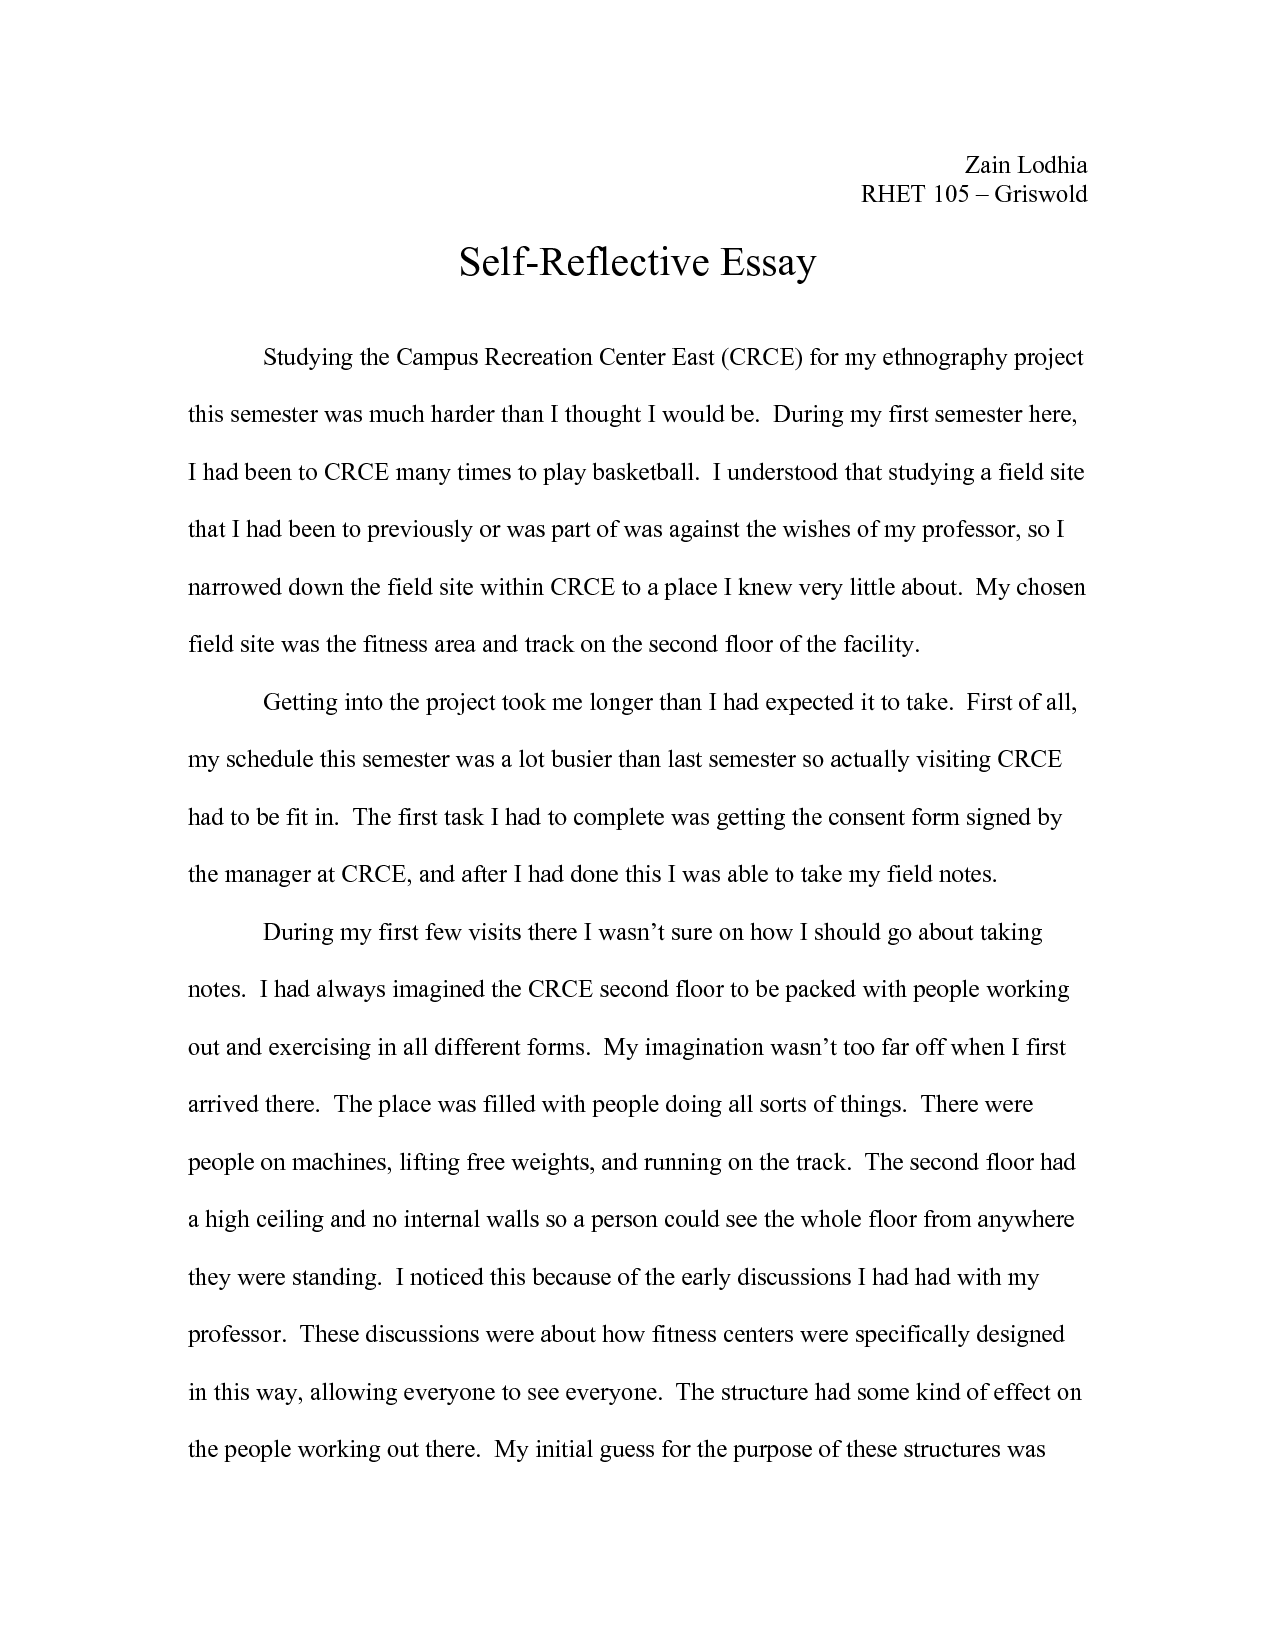 003 Reflective Essay Format Qal0pwnf46 Phenomenal Self Assessment Example Reflection Paper Apa Full